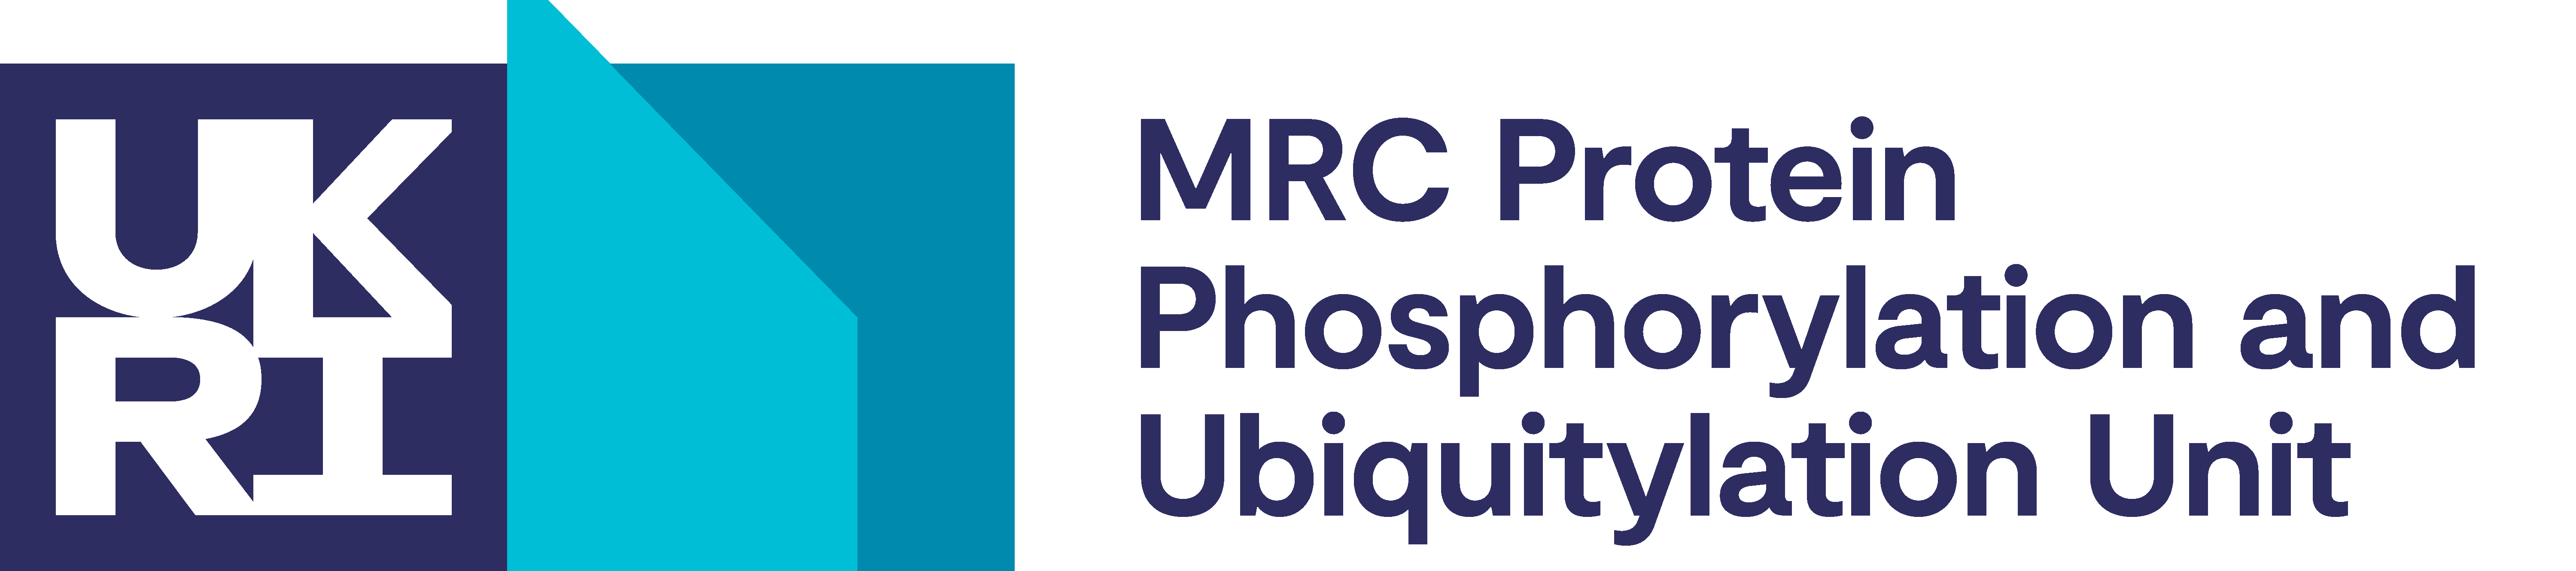 Medical Research Council Protein Phosphorylation and Ubiquitylation Unit